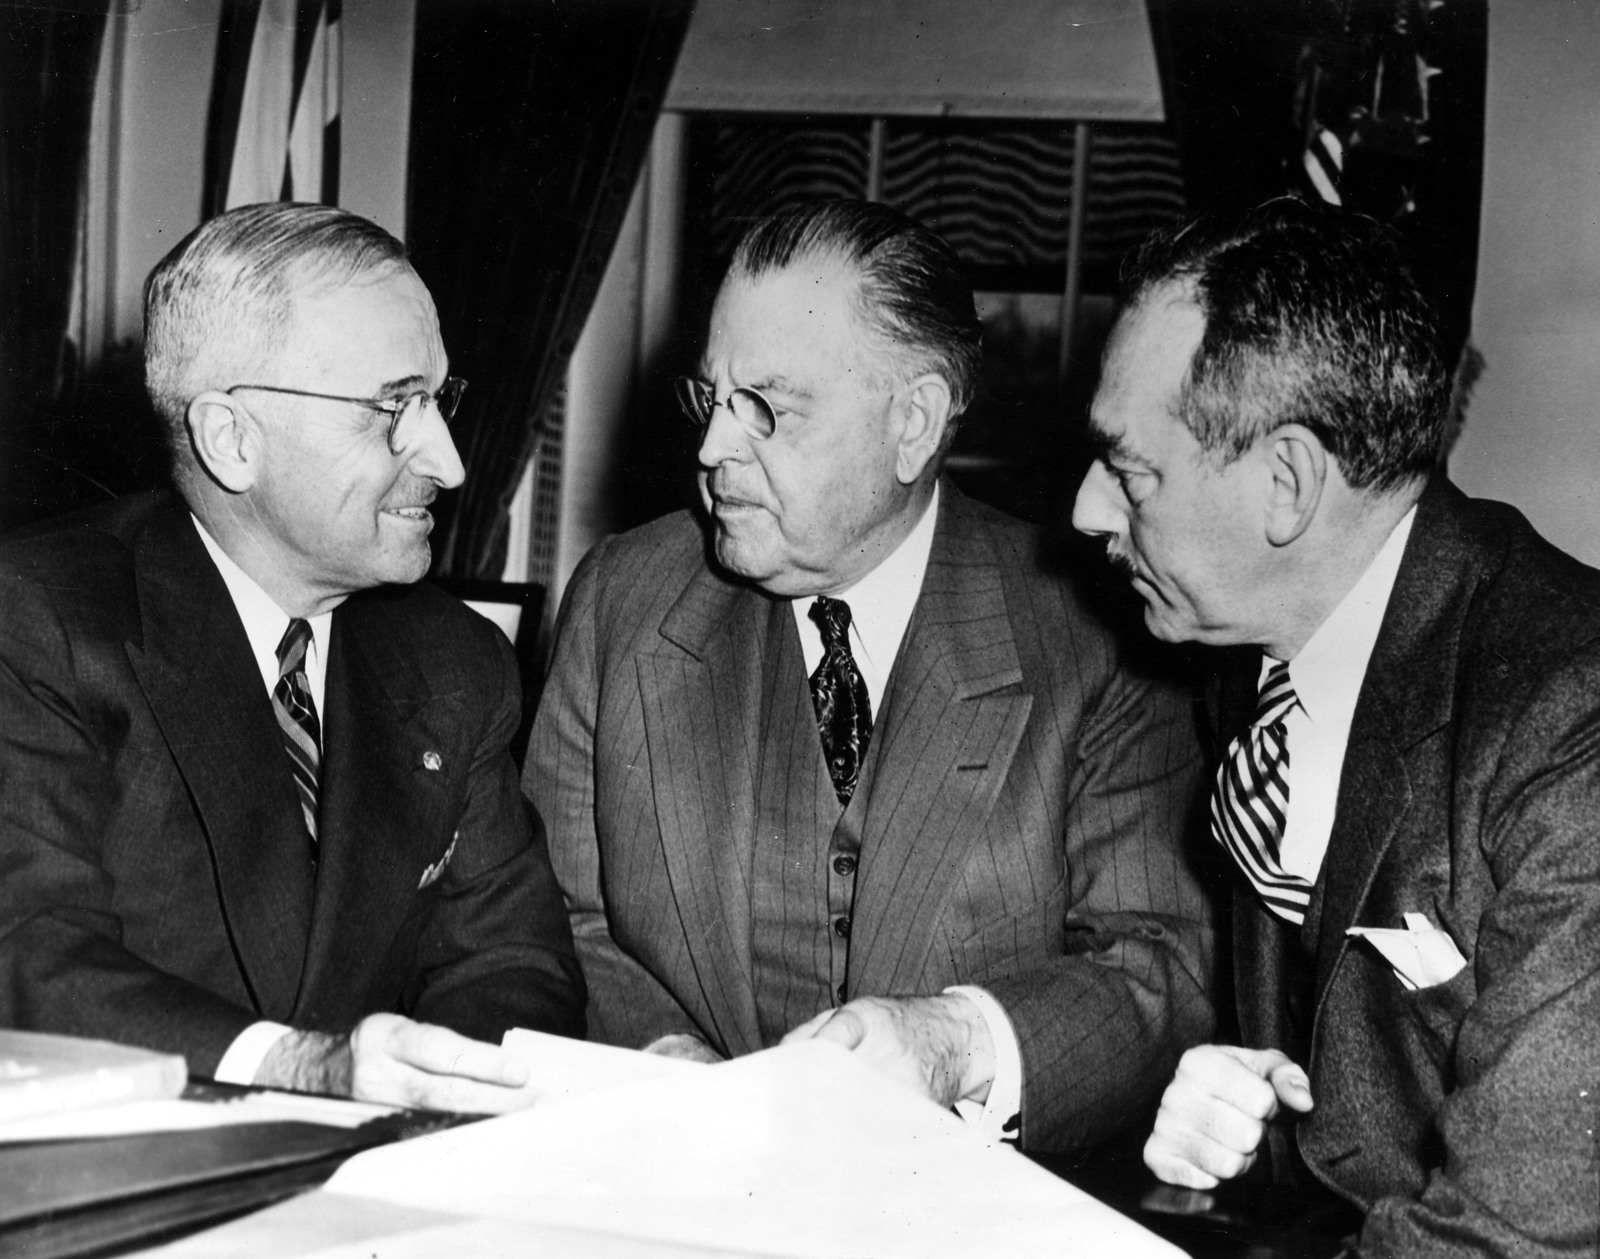 President Harry S. Truman Meets with Dean Acheson and Warren Austin